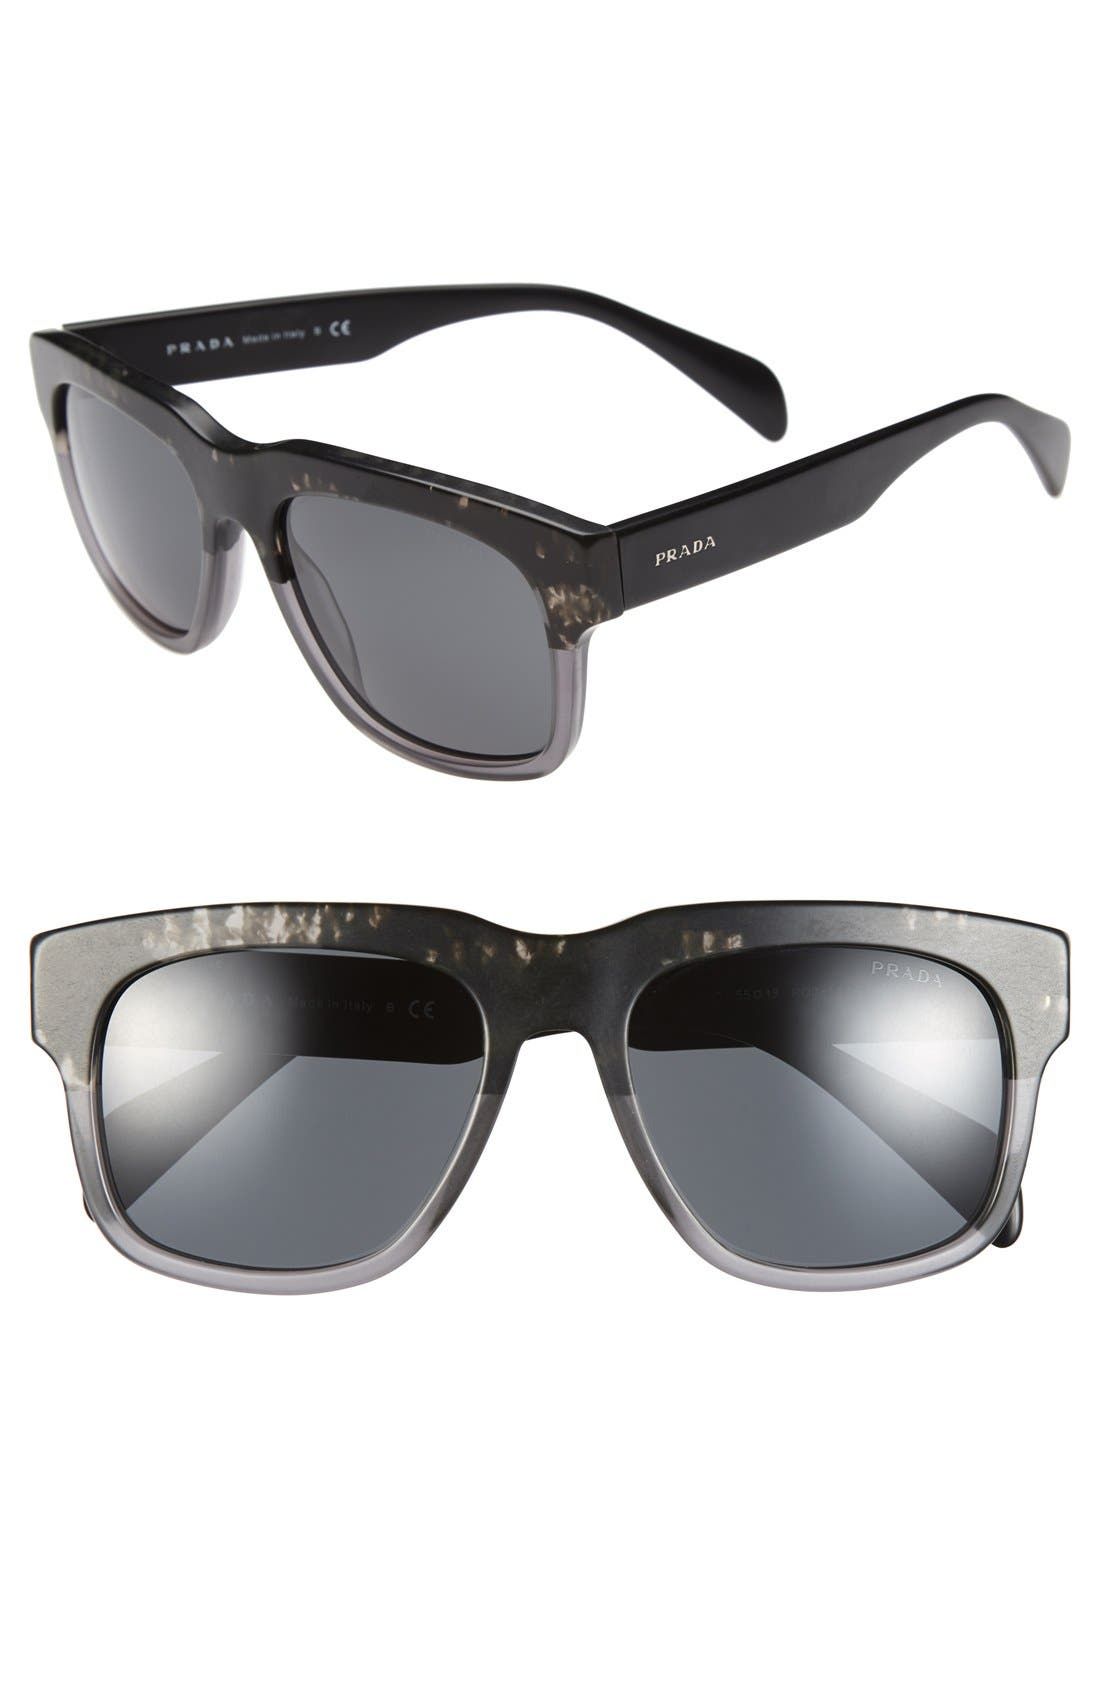 Alternate Image 1 Selected - Prada 55mm Sunglasses